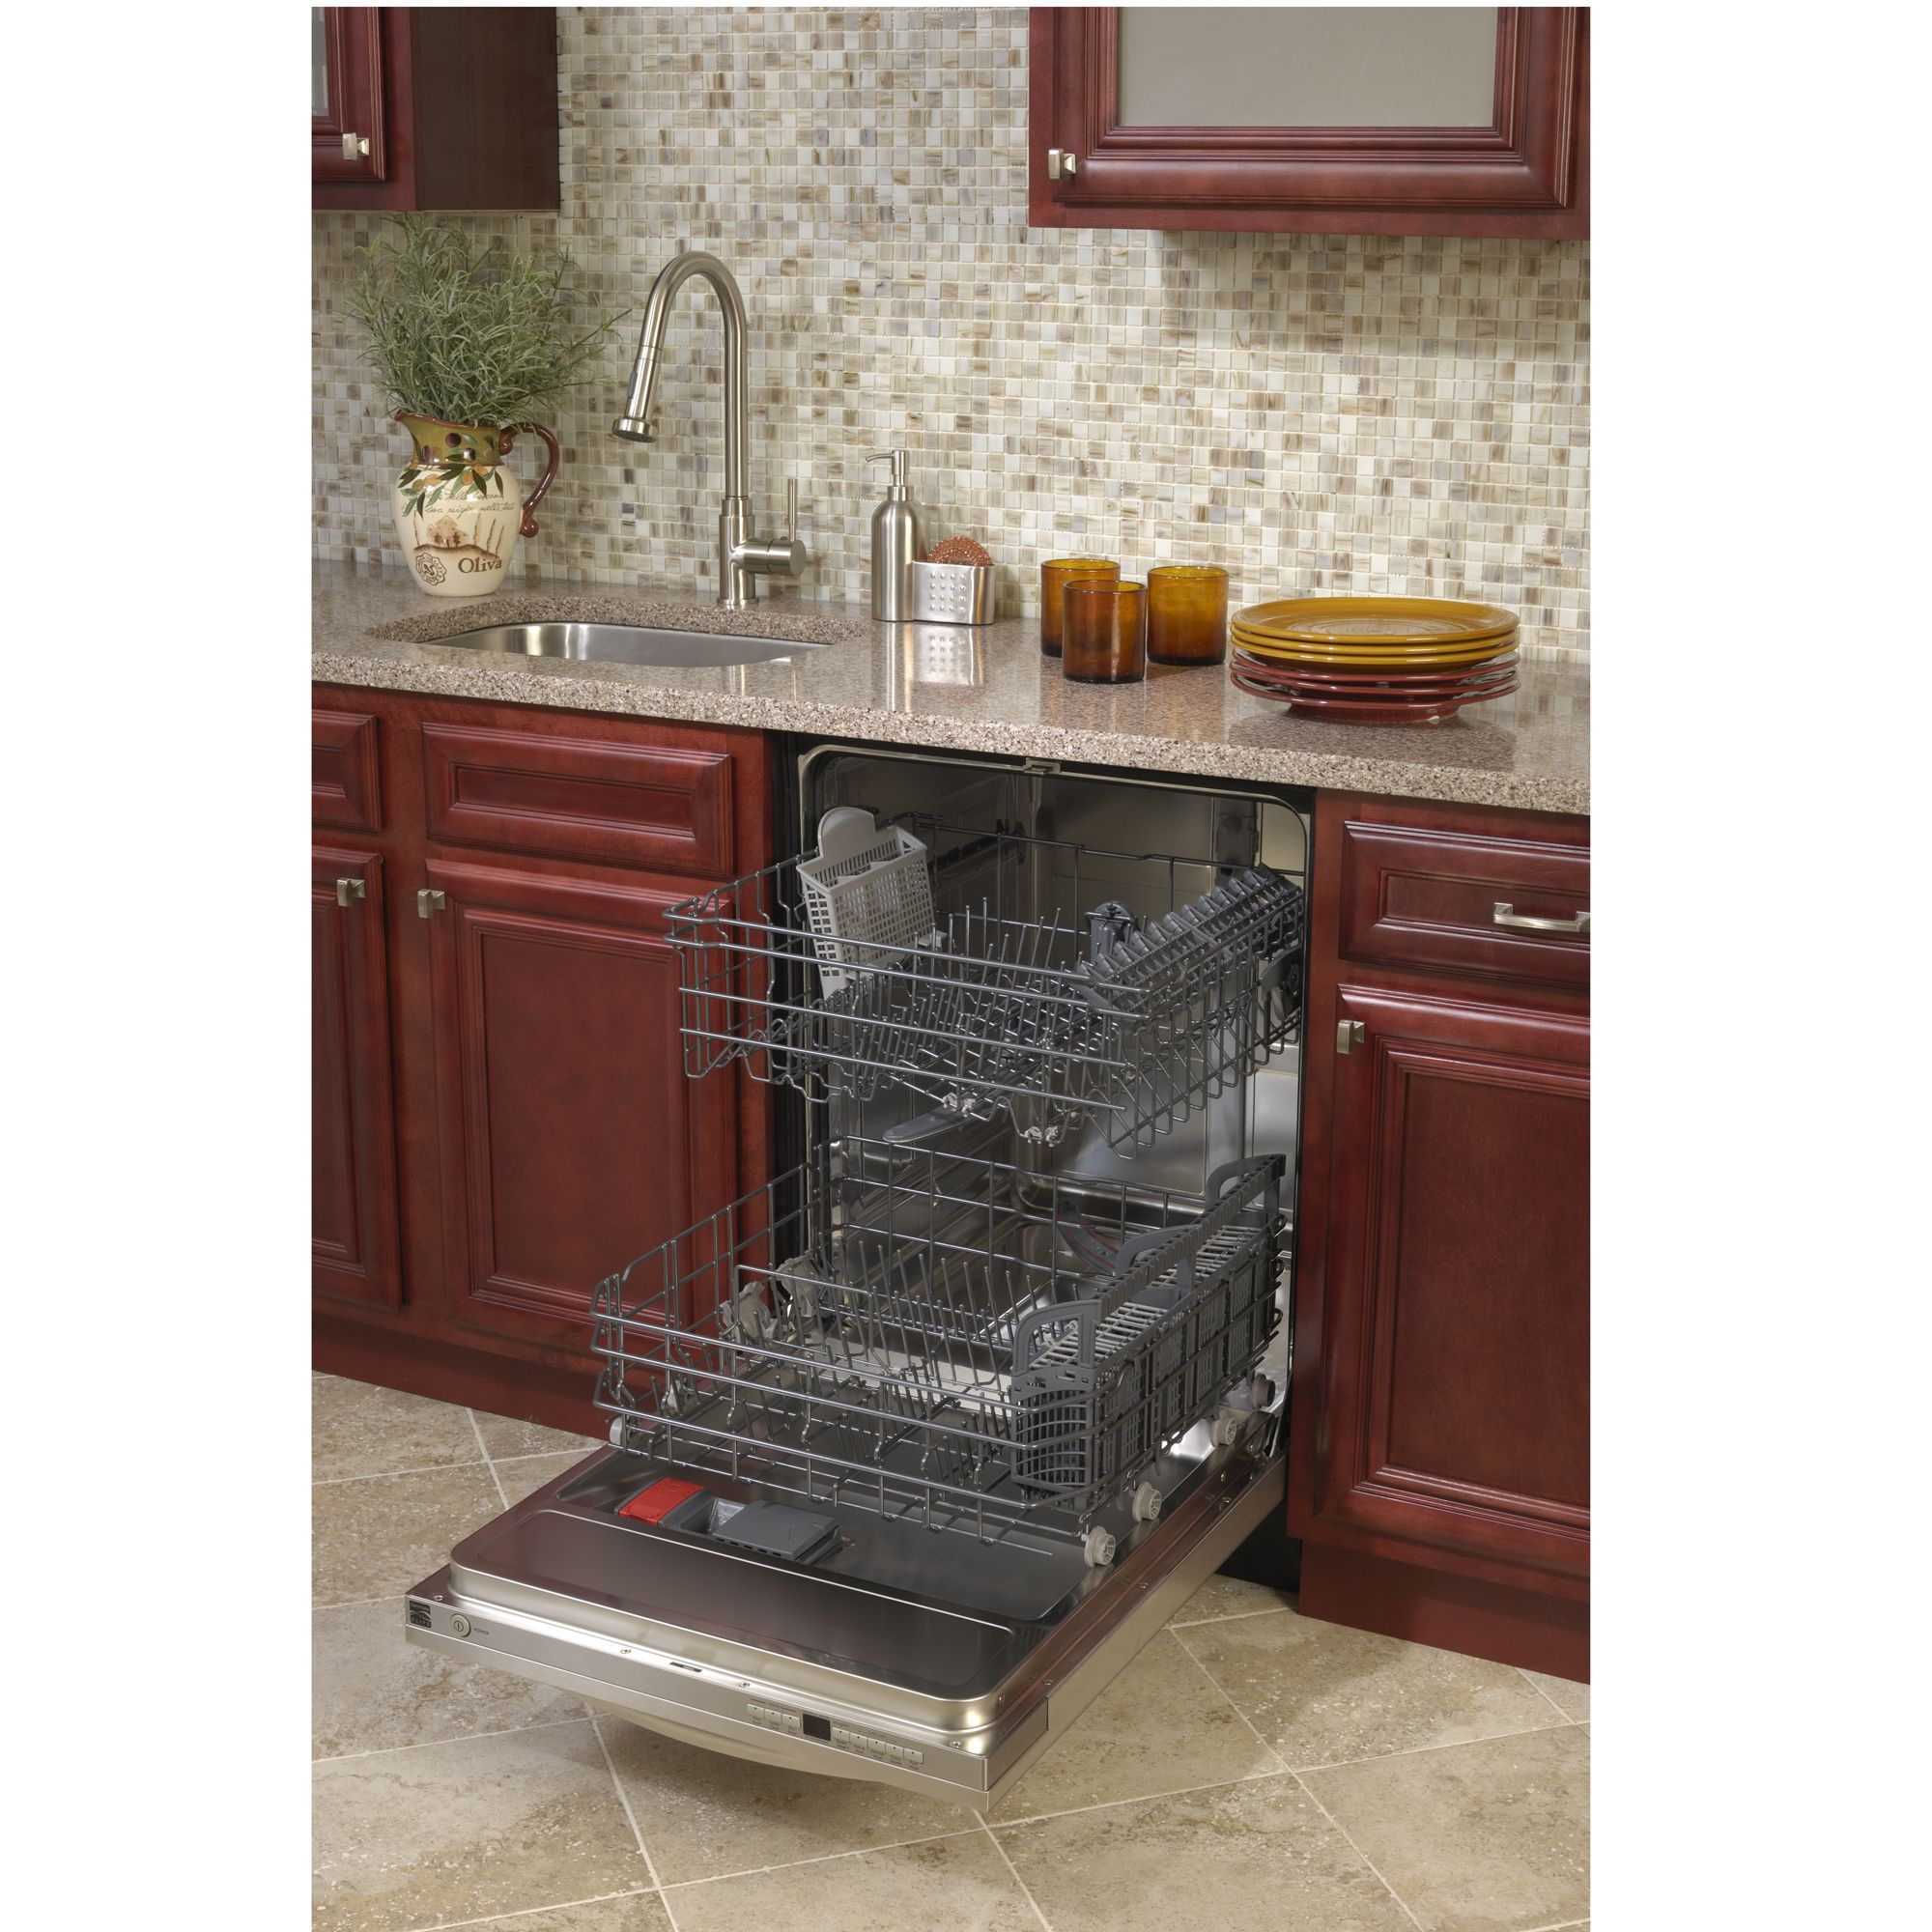 Kenmore Elite 24 in. Built-In Dishwasher - Stainless Steel